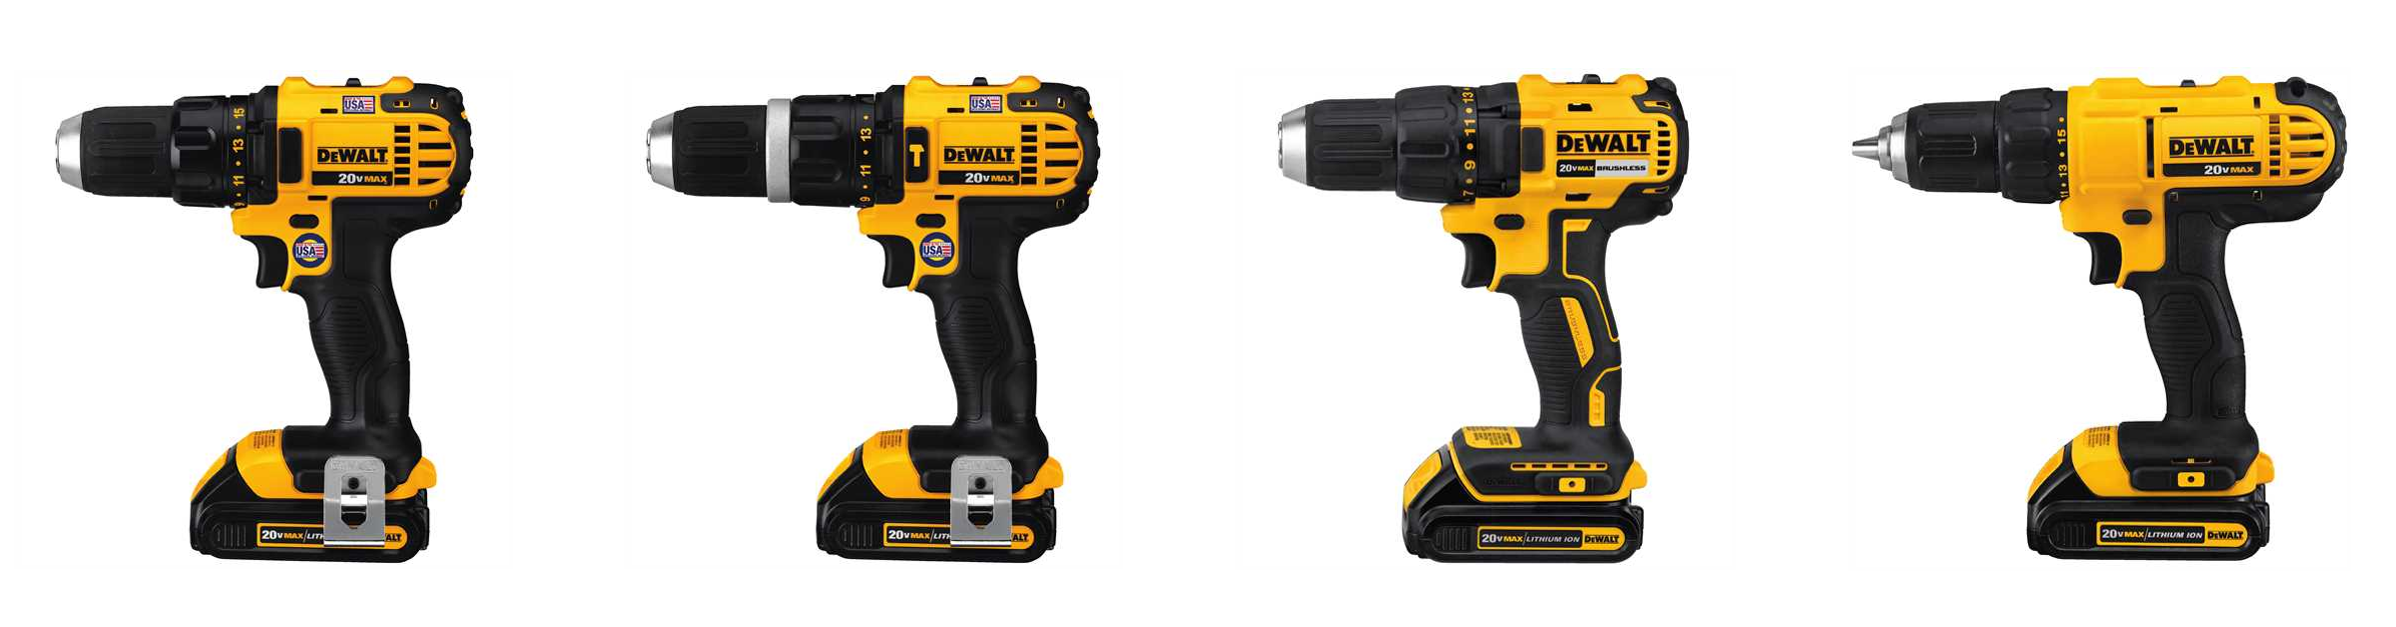 Four different DeWalt drills that look very similar